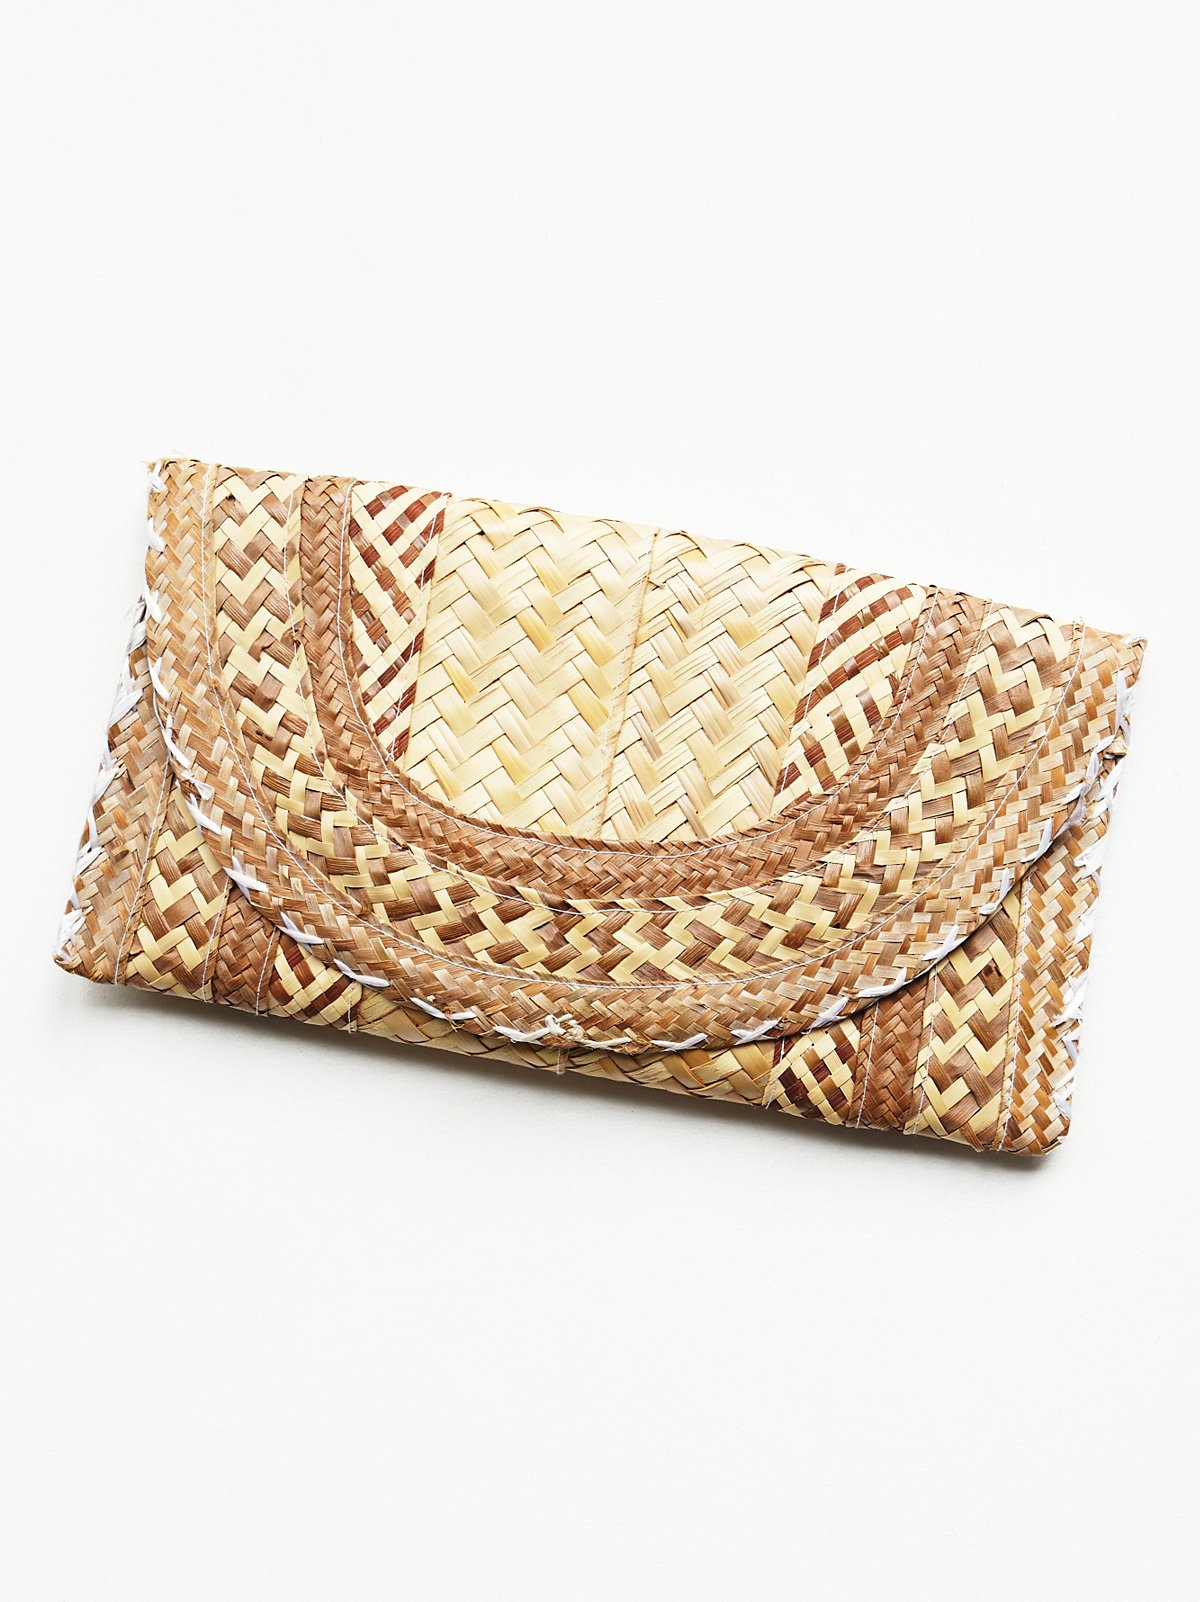 Vintage Woven Straw Clutch